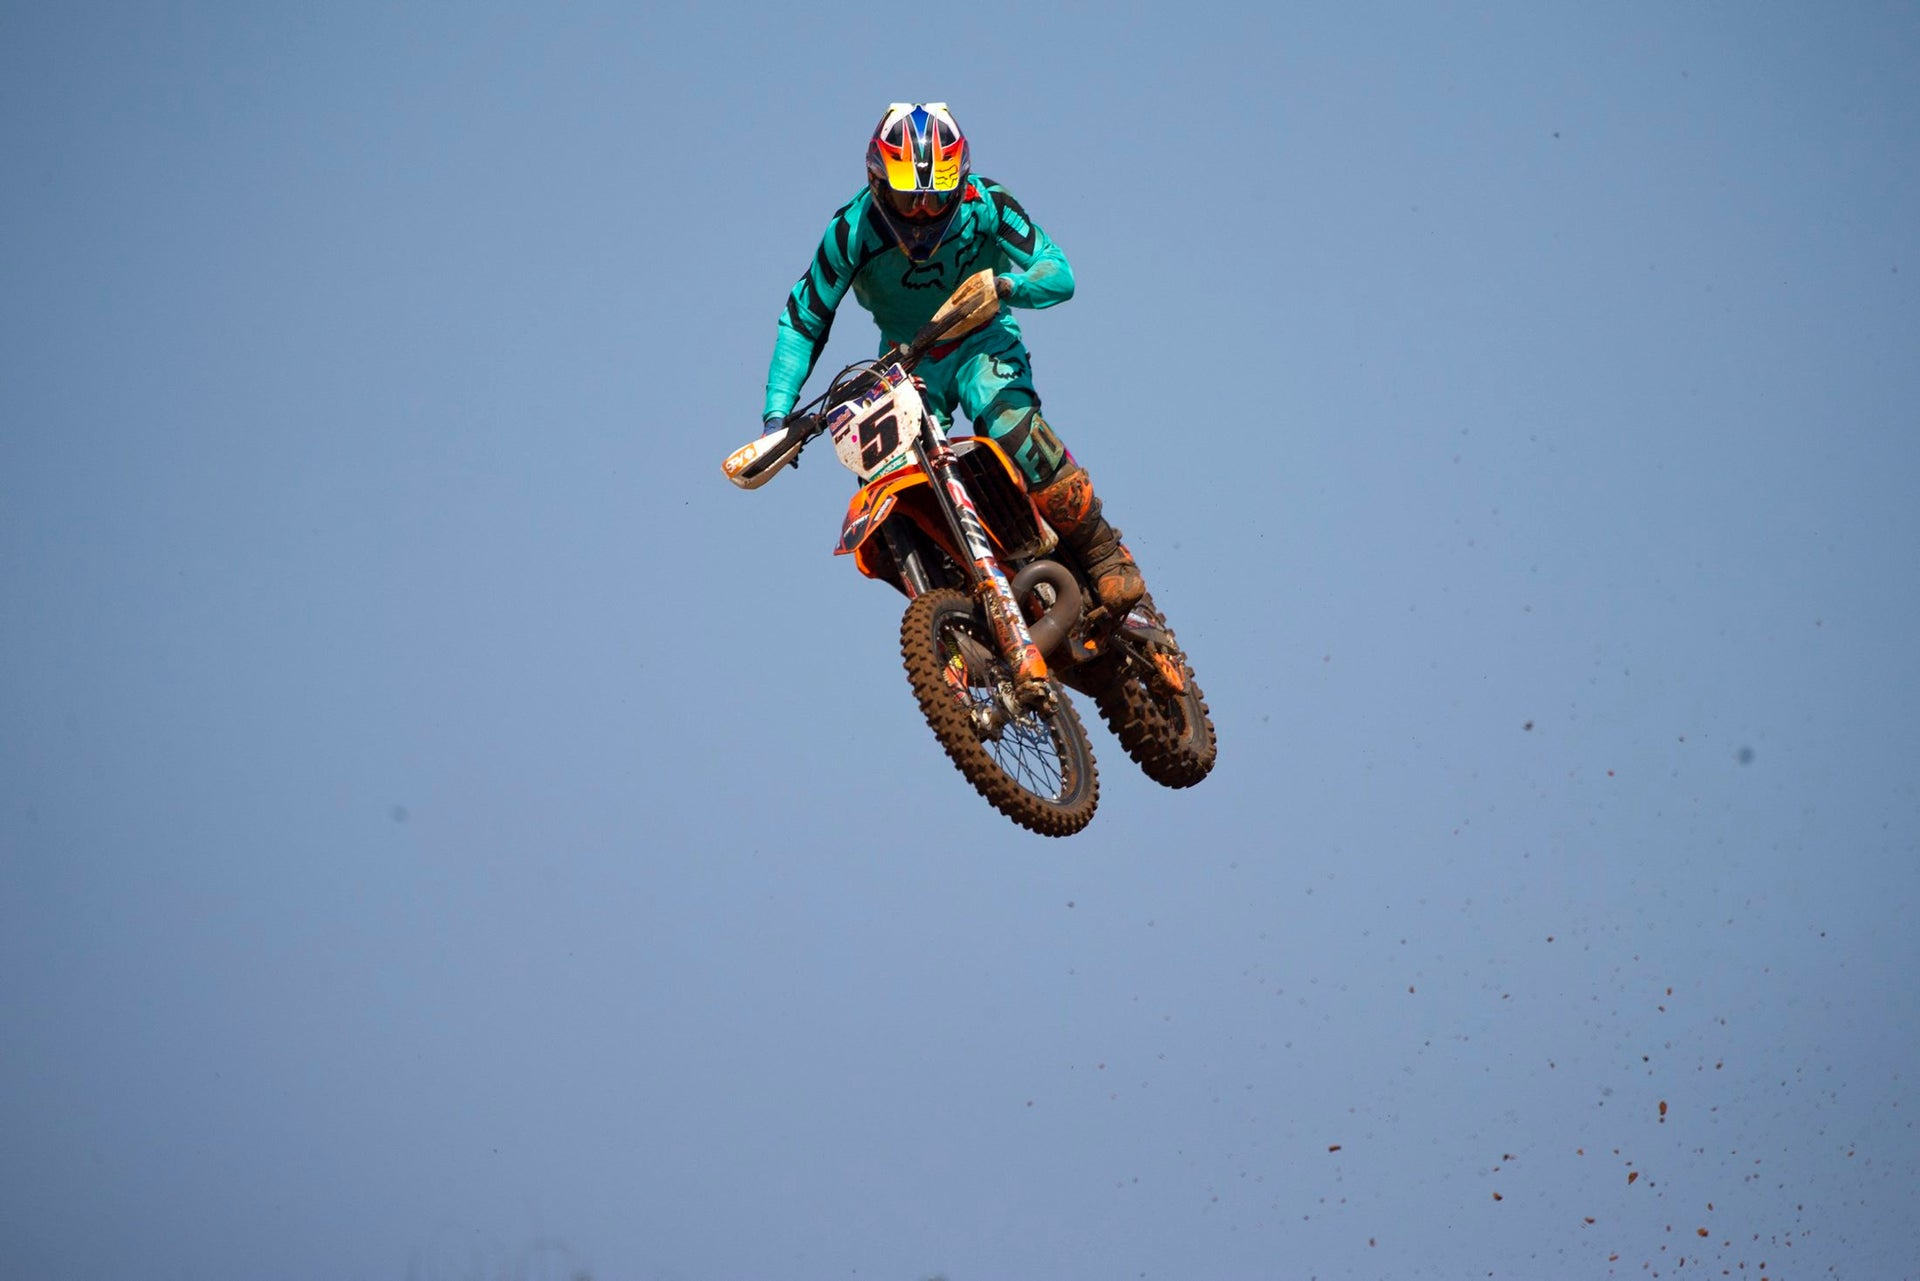 A rider competes during Israel's motocross championship in the MX Wingate cross country race track near Netanya, Israel, Saturday, April 14, 2018.